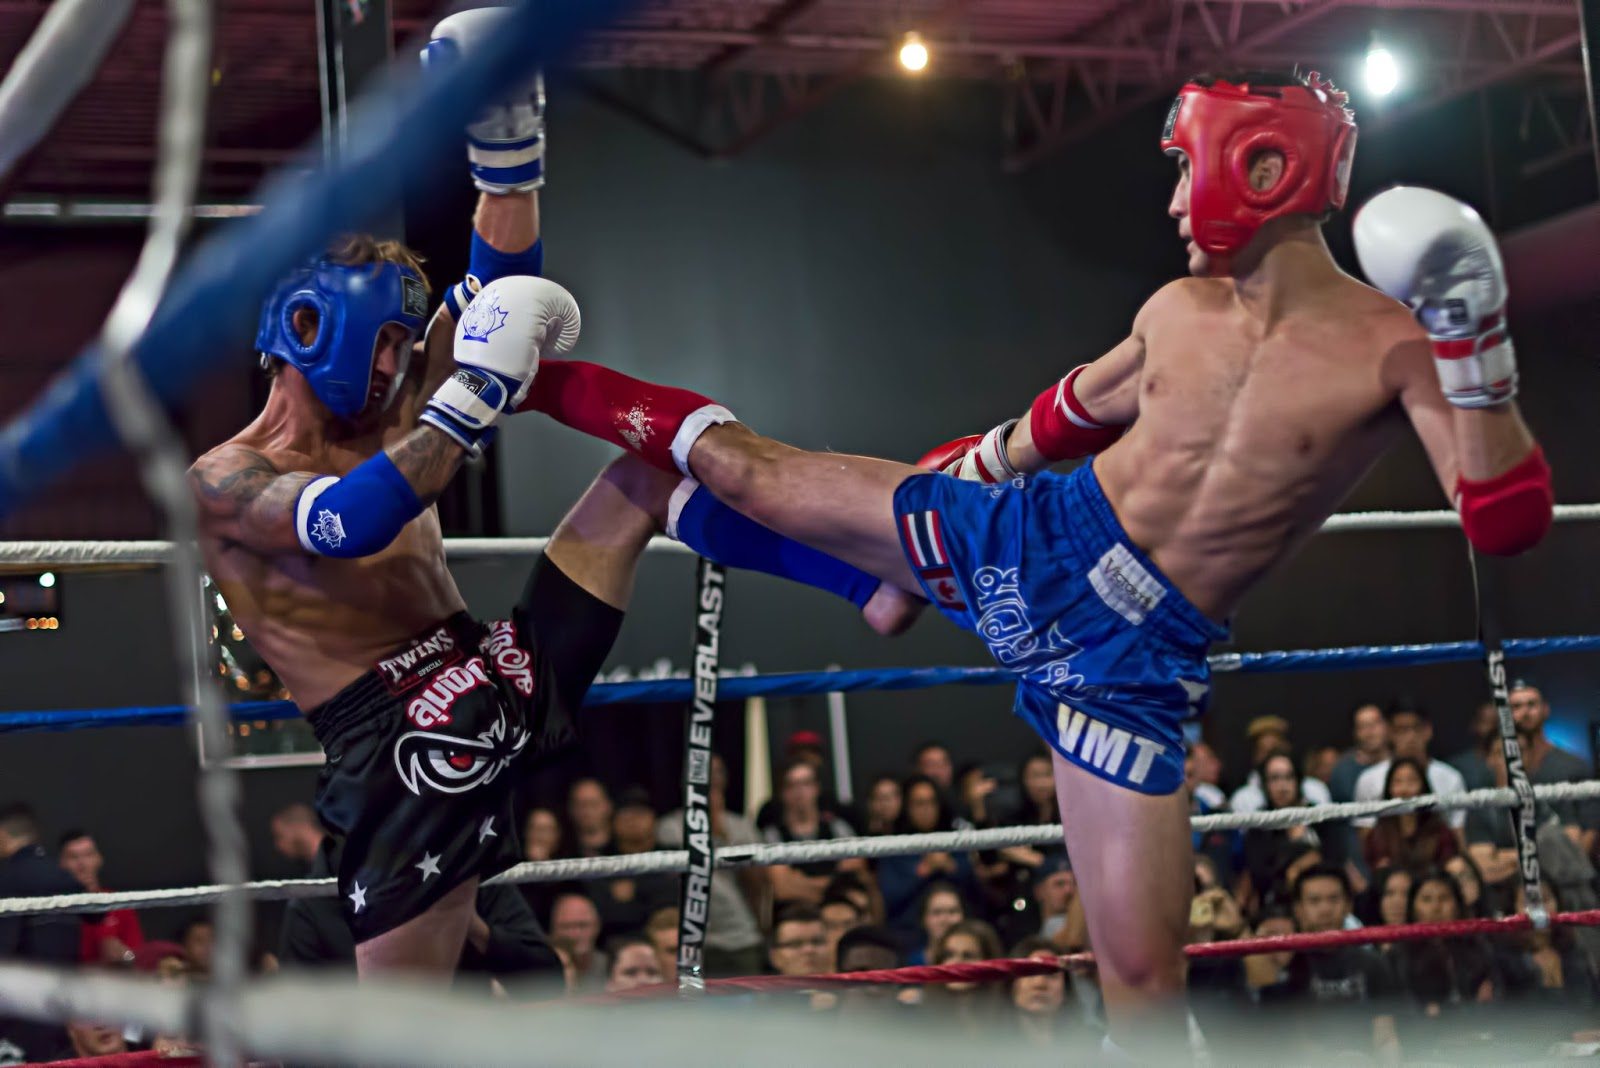 Outdoor Jay: Photography Challenge - Shooting Boxing Match